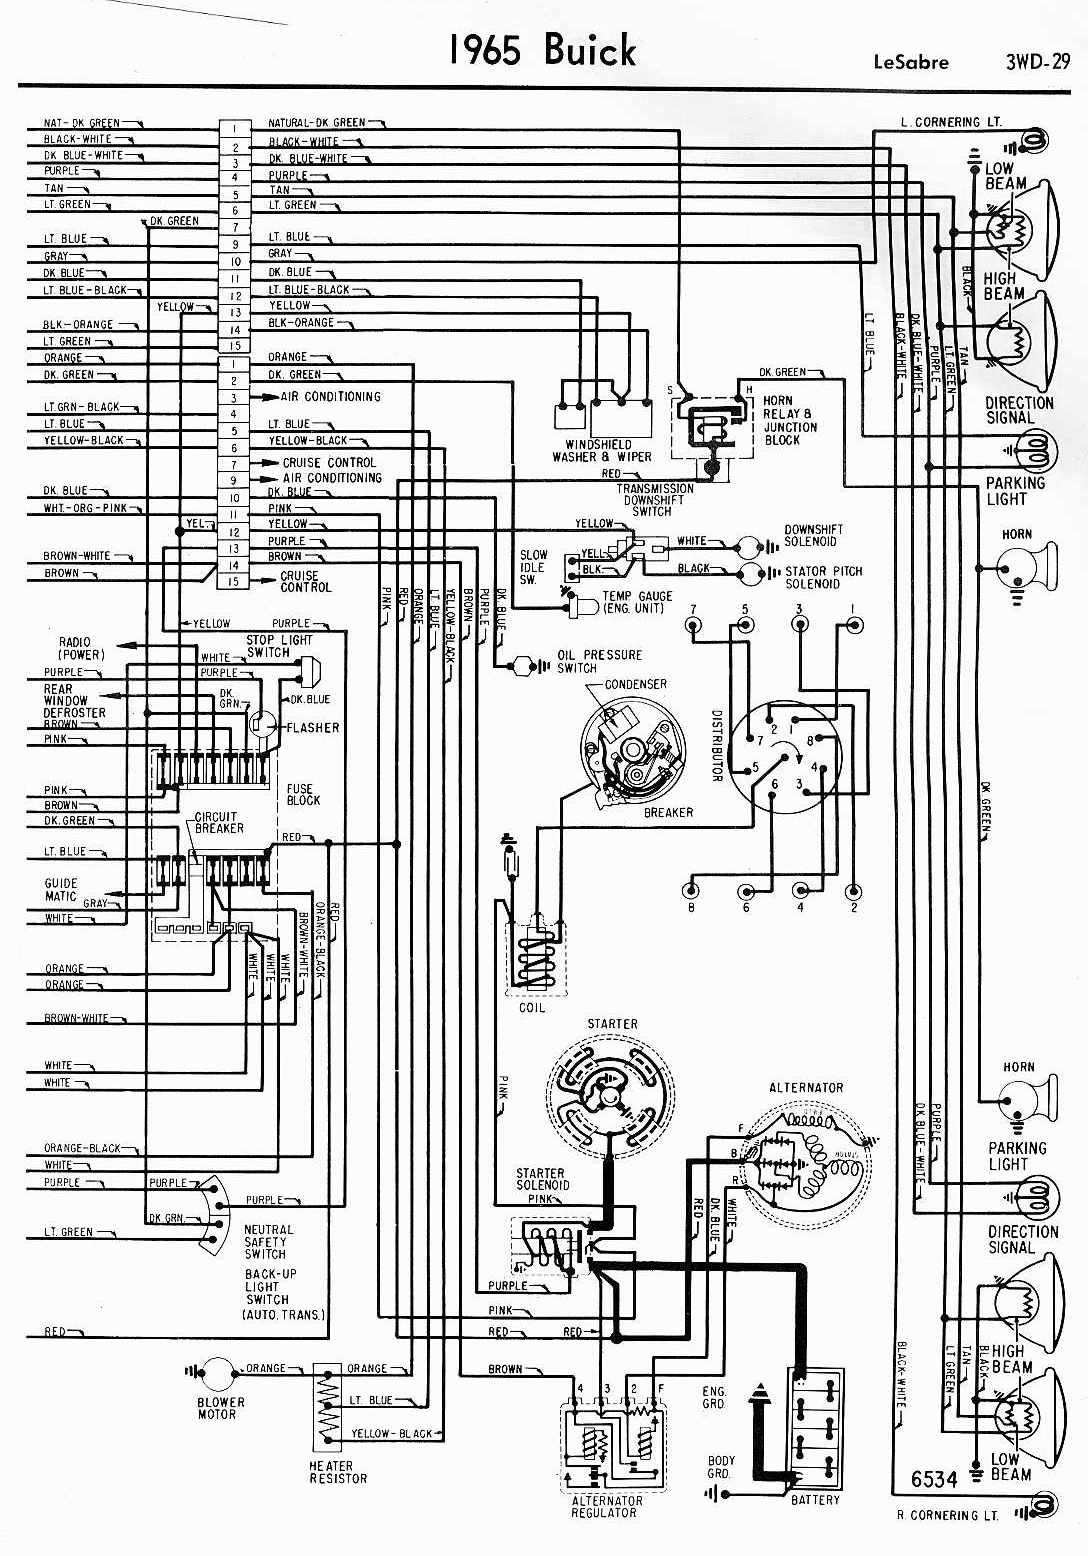 Cj7 Wiring Diagram septic tank installations diagram – Jeep Cj Dimmer Switch Wiring